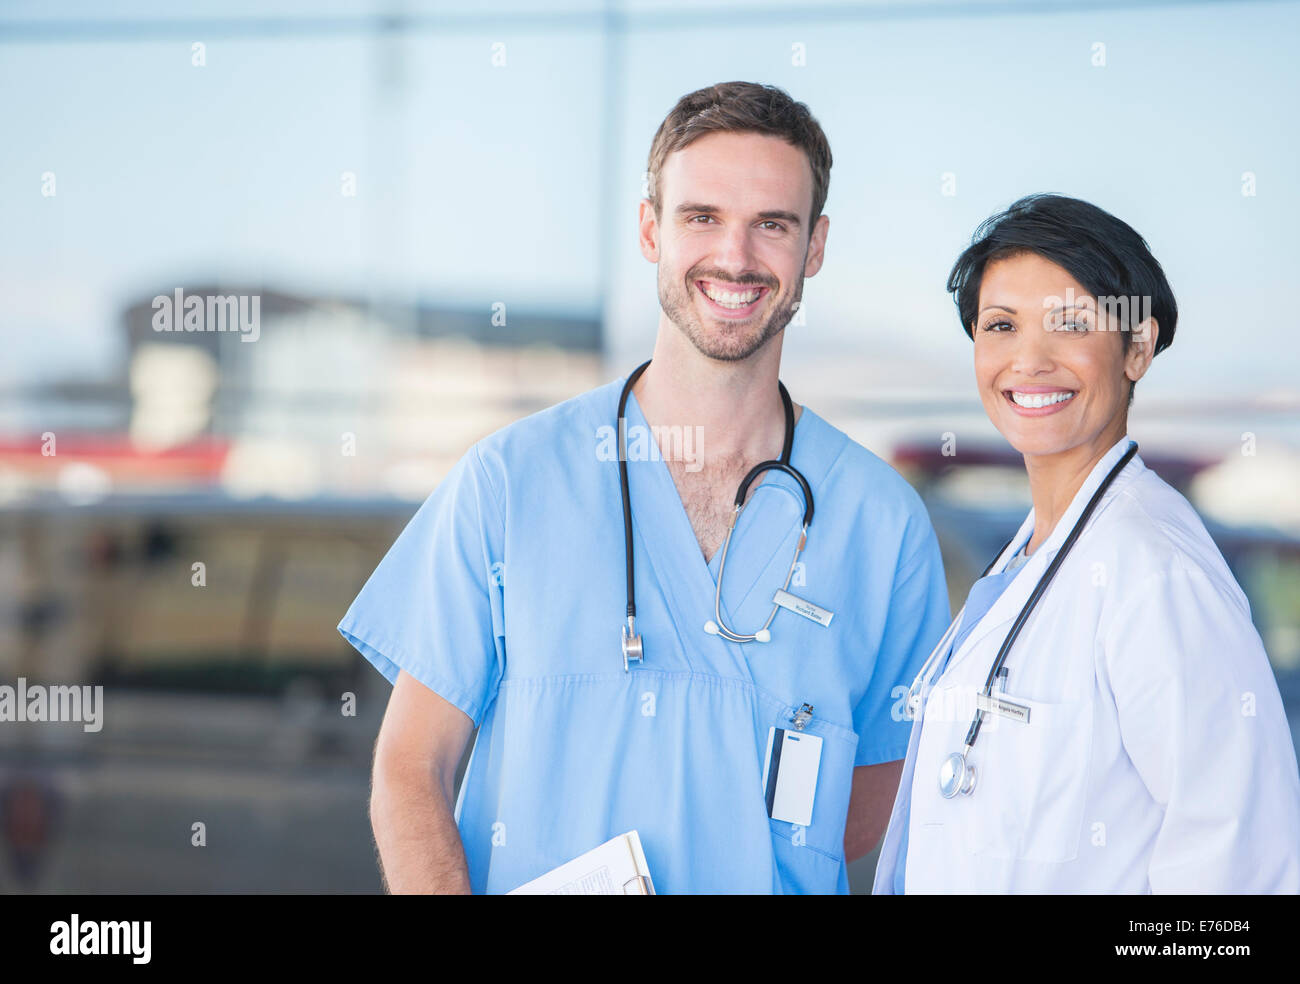 Doctor and nurse smiling outdoors - Stock Image